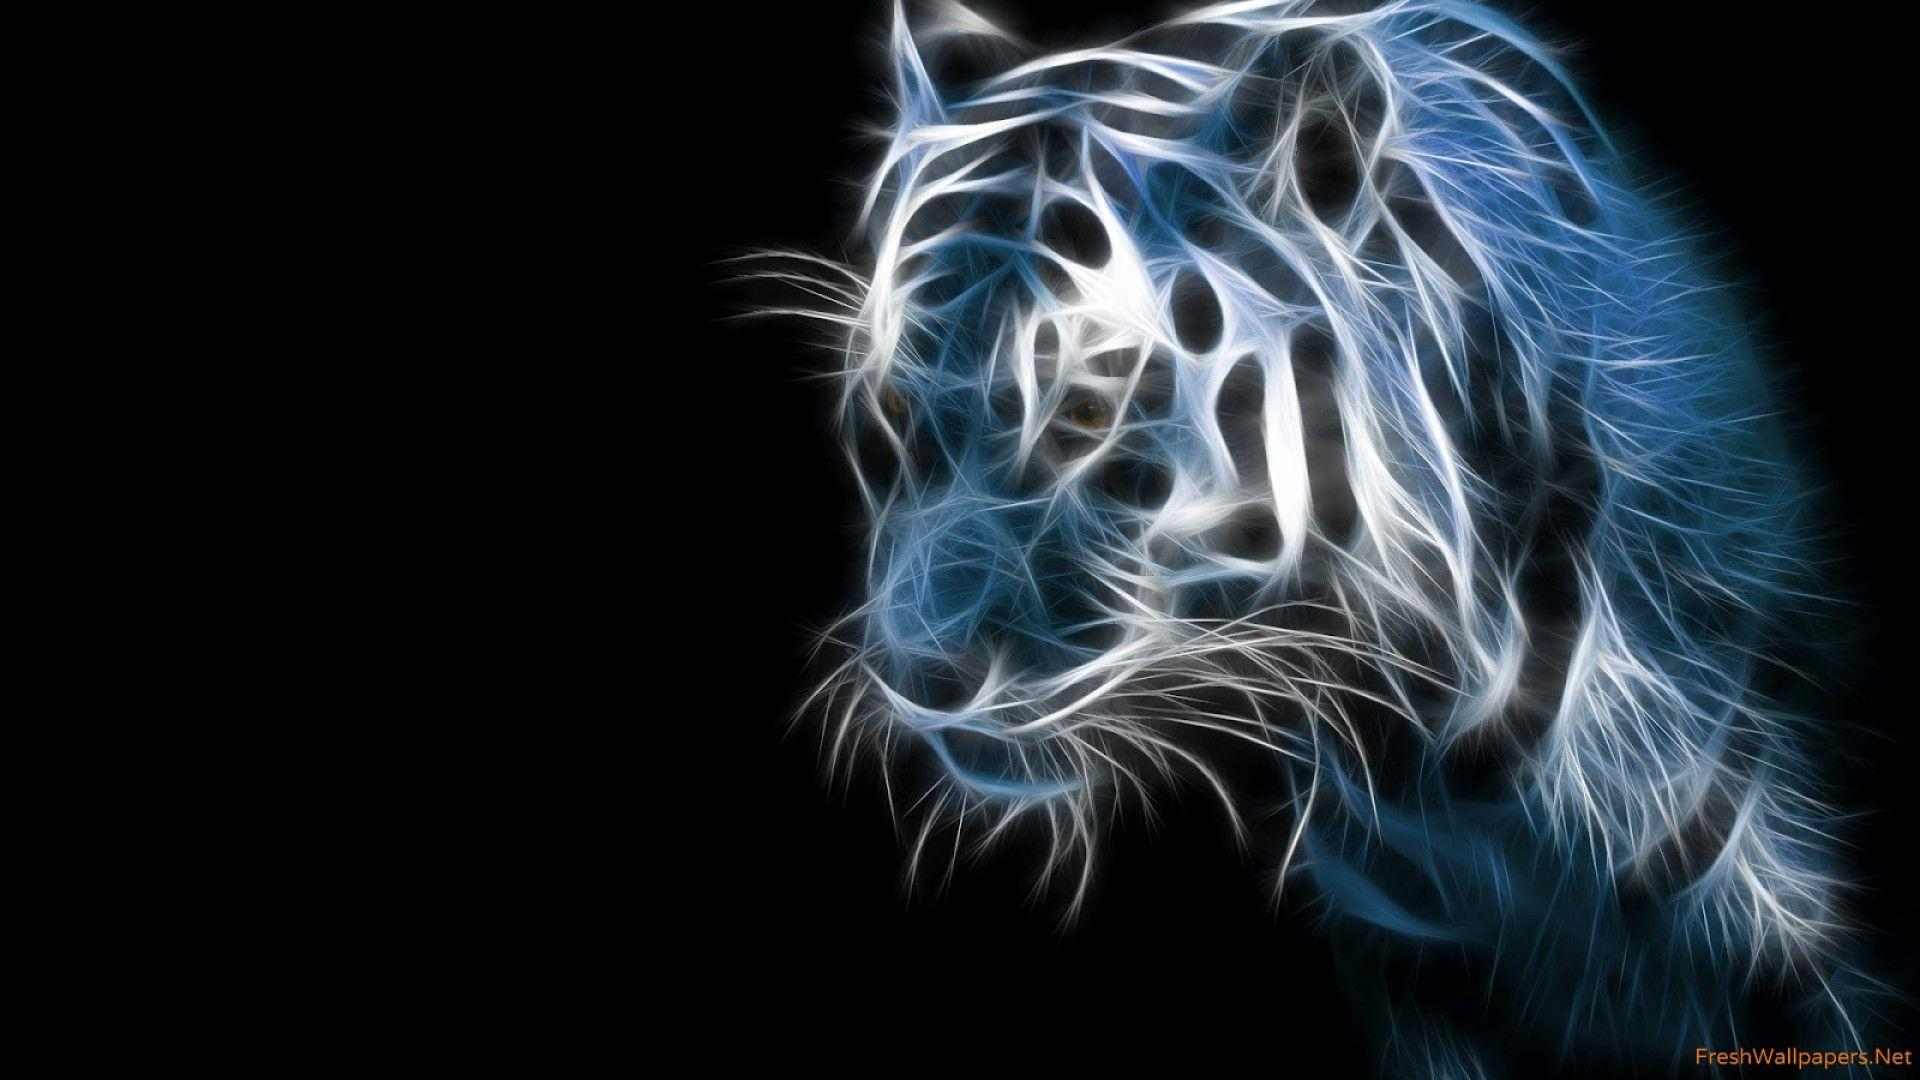 white tiger 4d wallpapers | Freshwallpapers